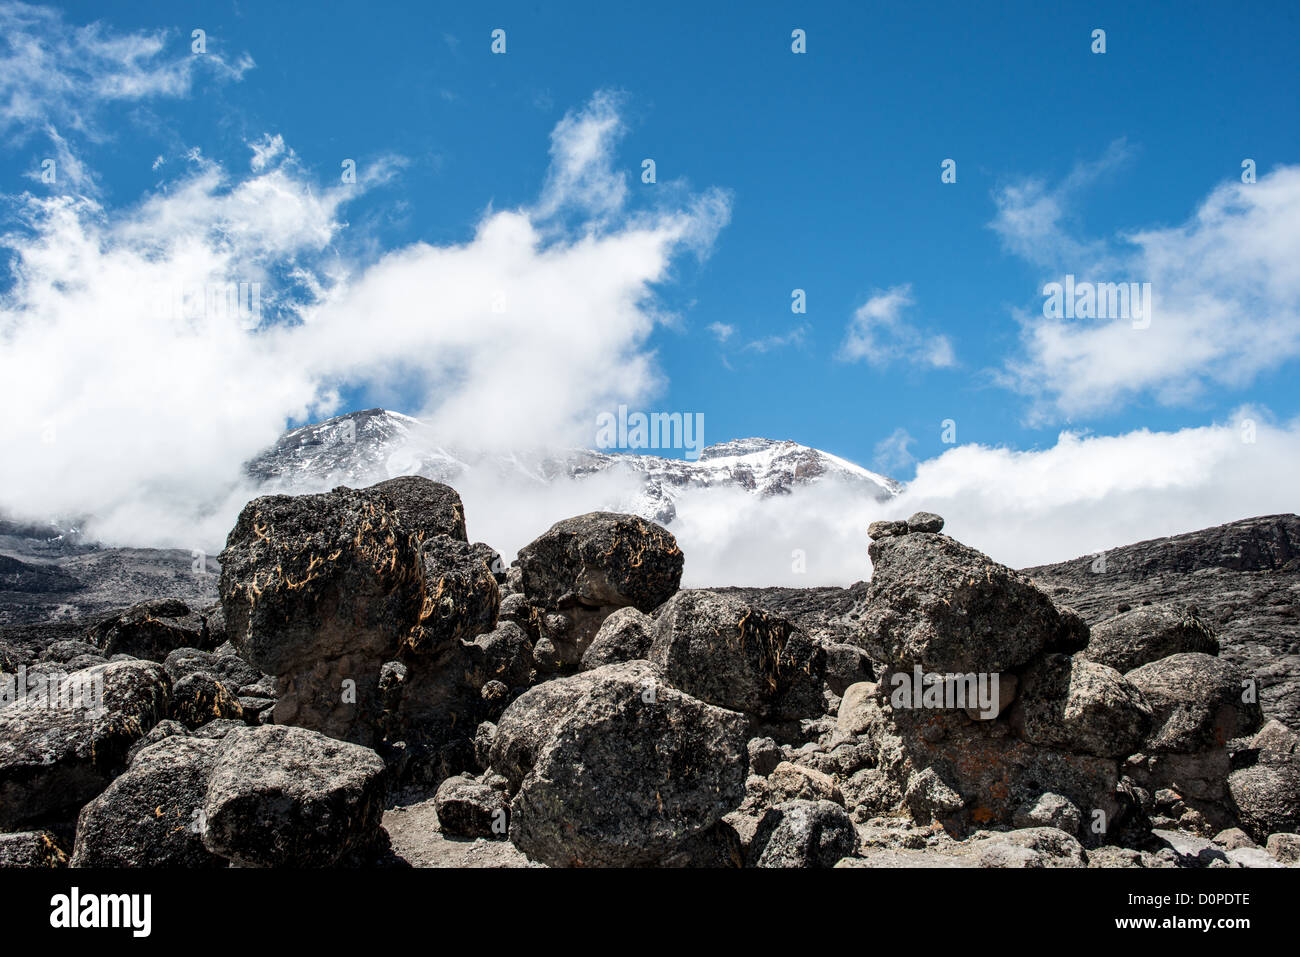 MT KILIMANJARO, Tanzania - The summit of Mt Kilimanjaro is in the distance, partly obscured by clouds, as seen from - Stock Image